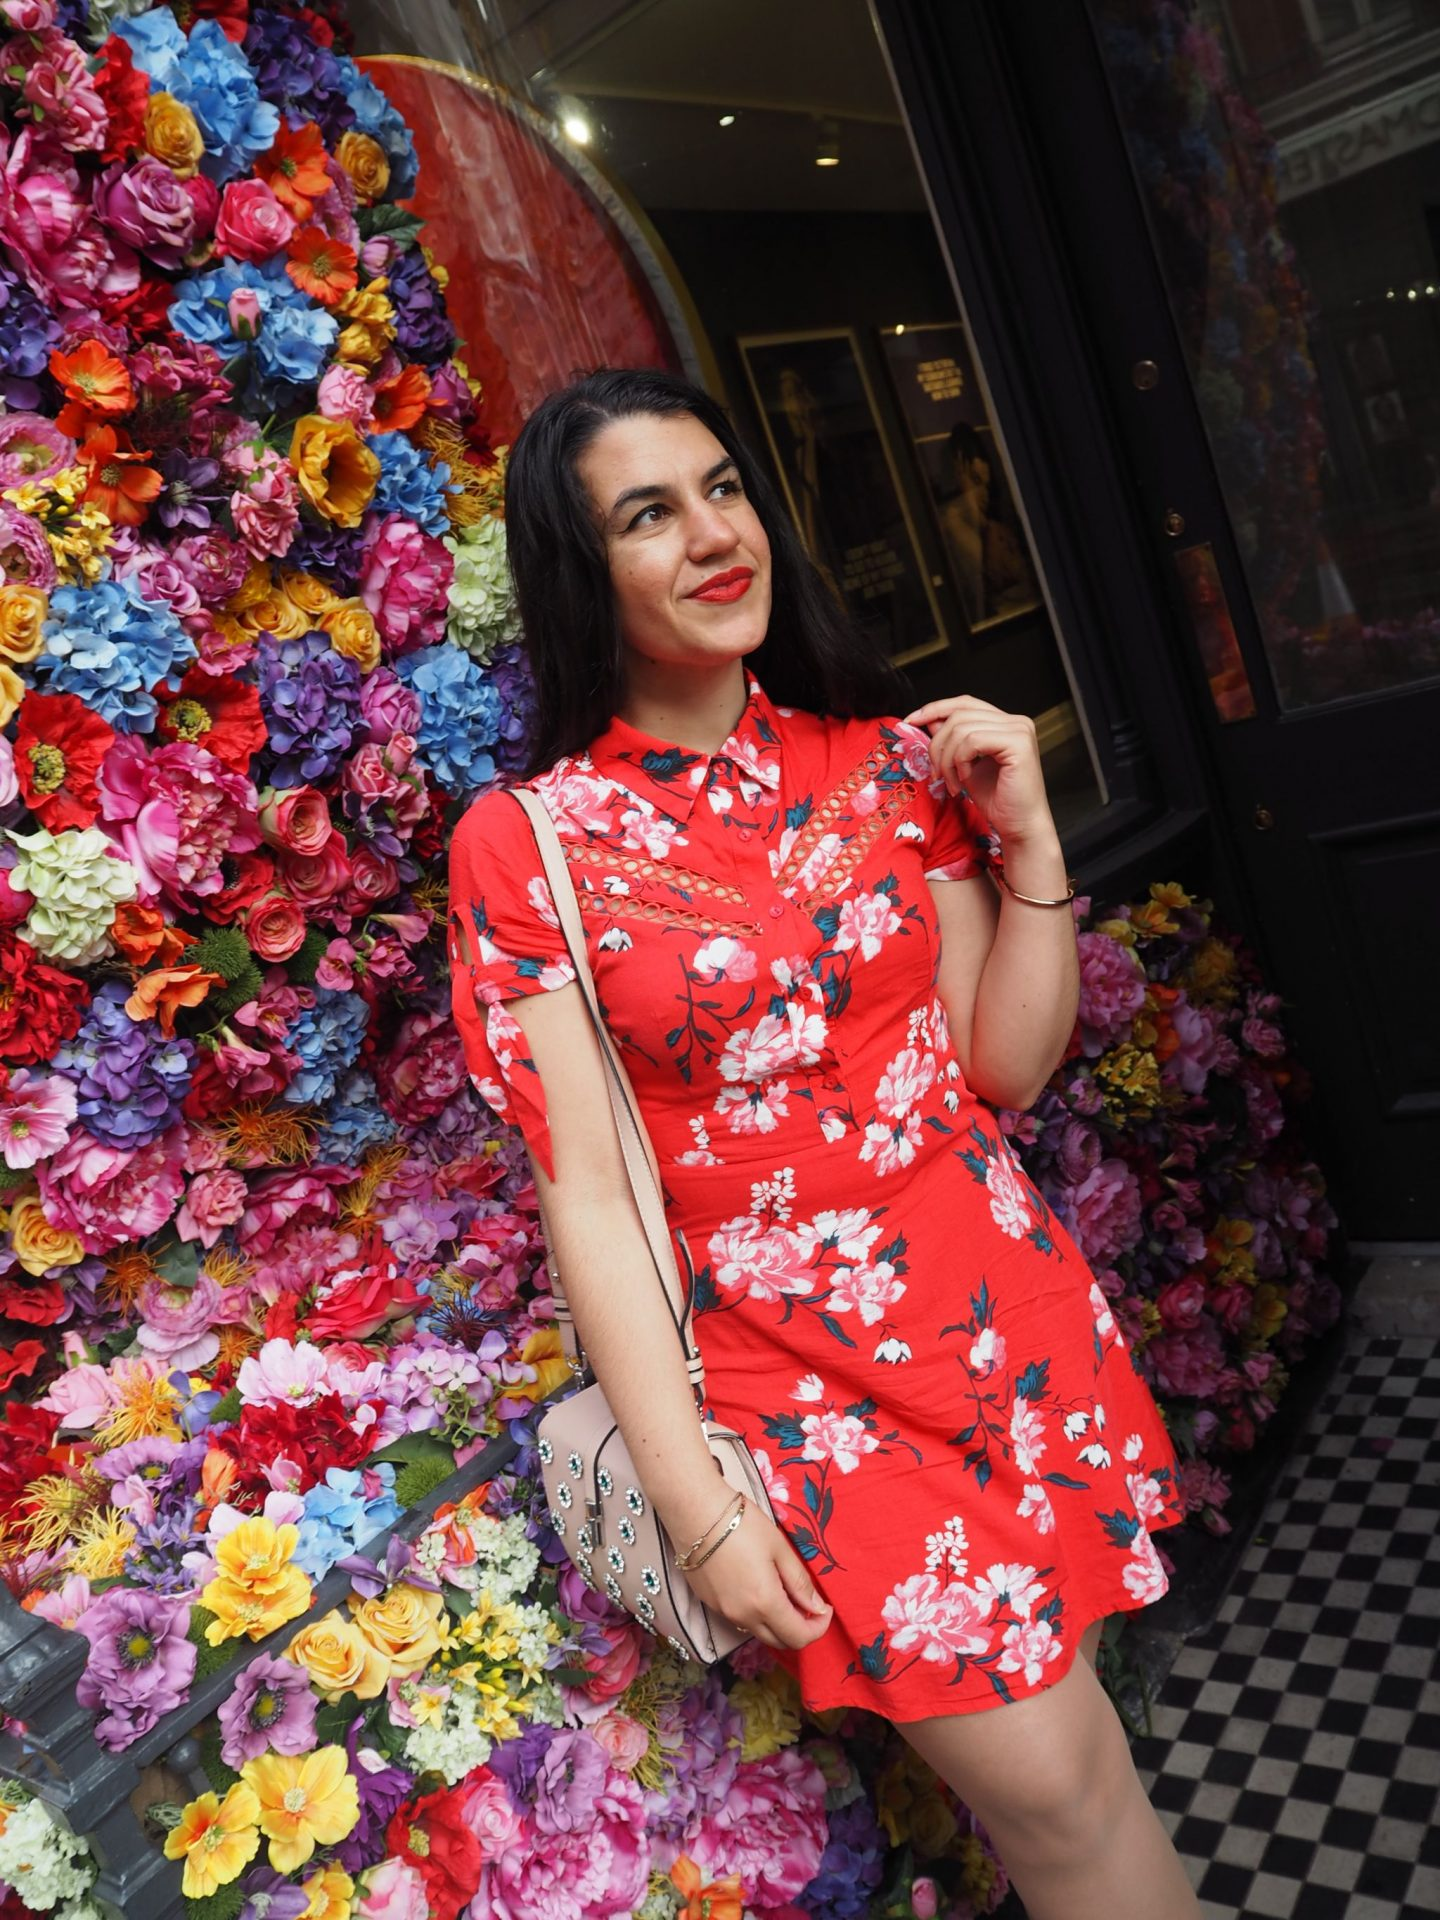 An Ode To The Red Floral Dress